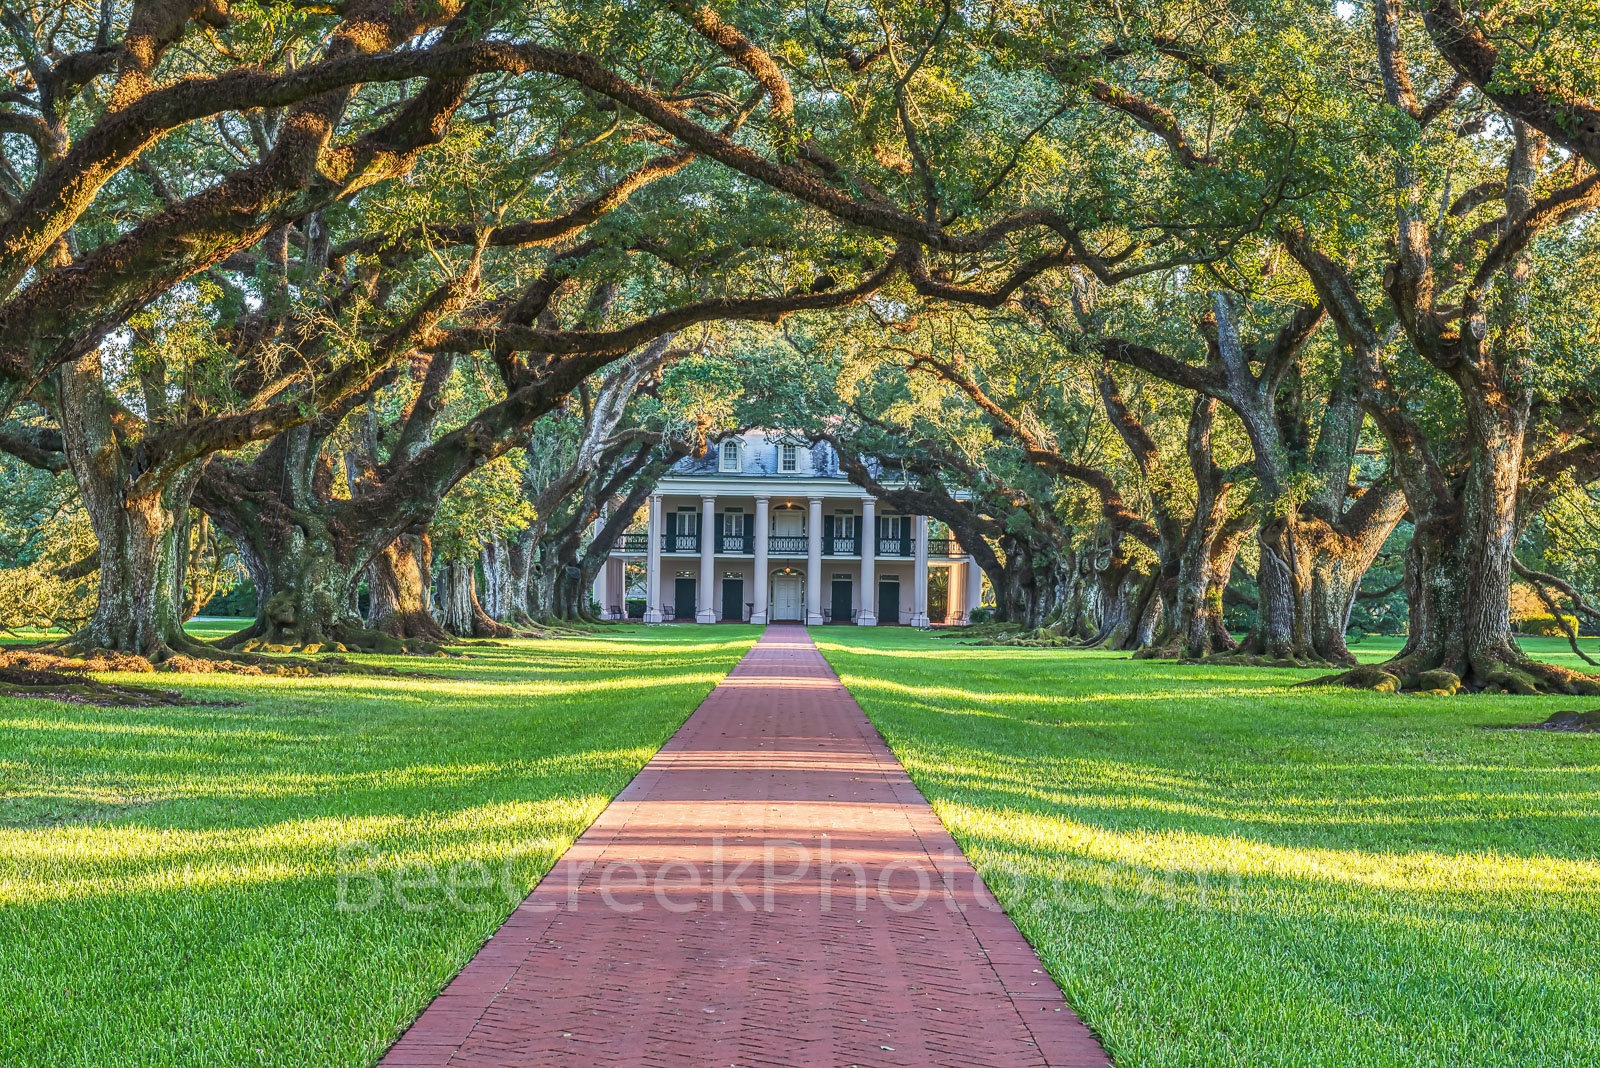 Lousiana, Oak Alley Plantation, sunrise, big house, branches, mansion, oak trees, plantation, roots, sidewalk, slaves, sugar cane, canopied path, seven oaks, oak valley, National Historic landmark, sl, photo